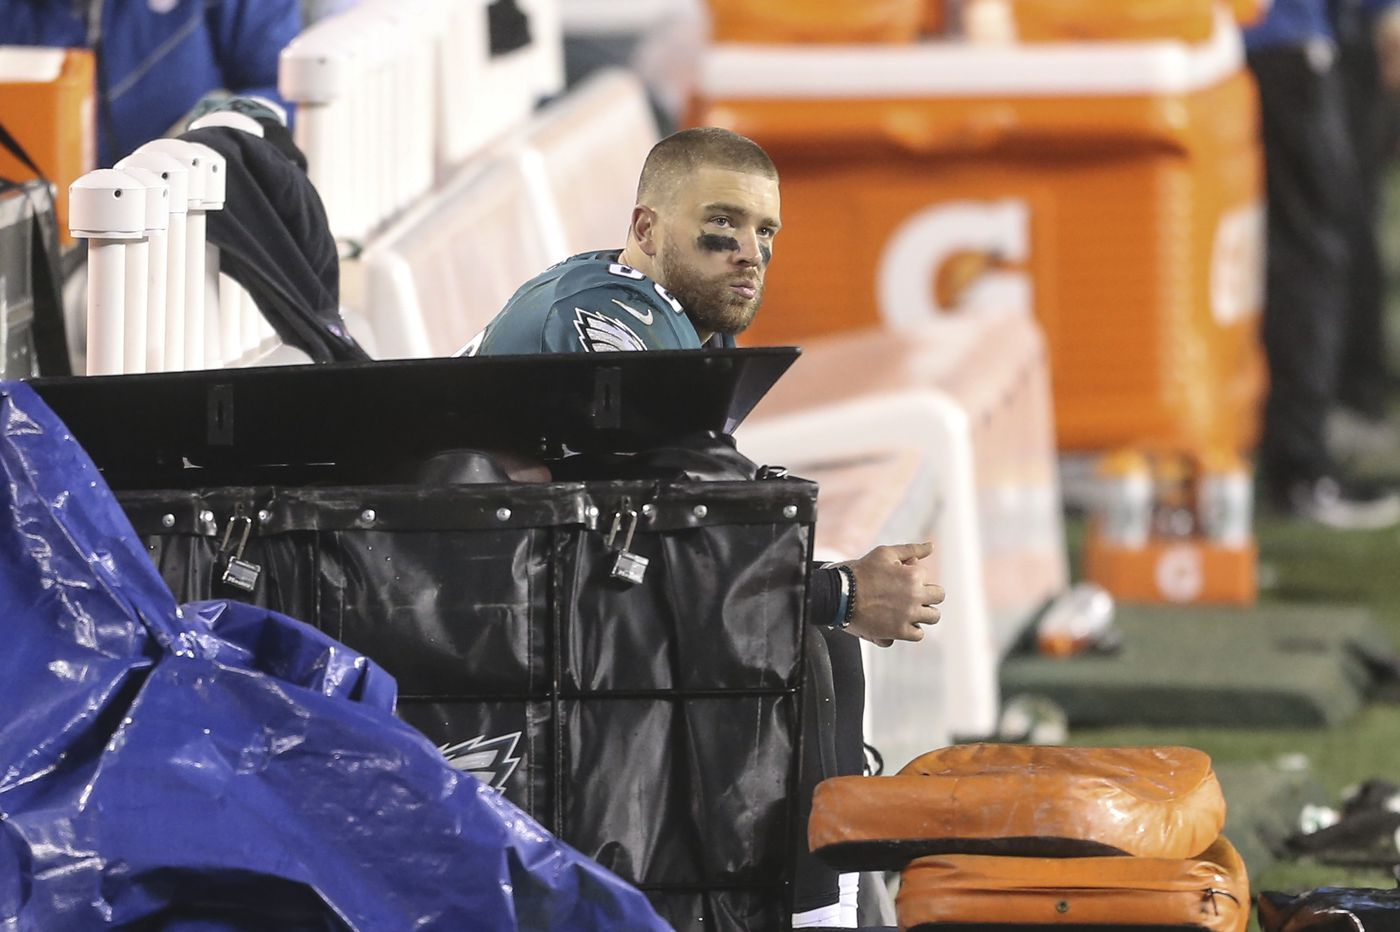 Eagles tight end Zach Ertz gets emotional in what may be his farewell to Philly fans